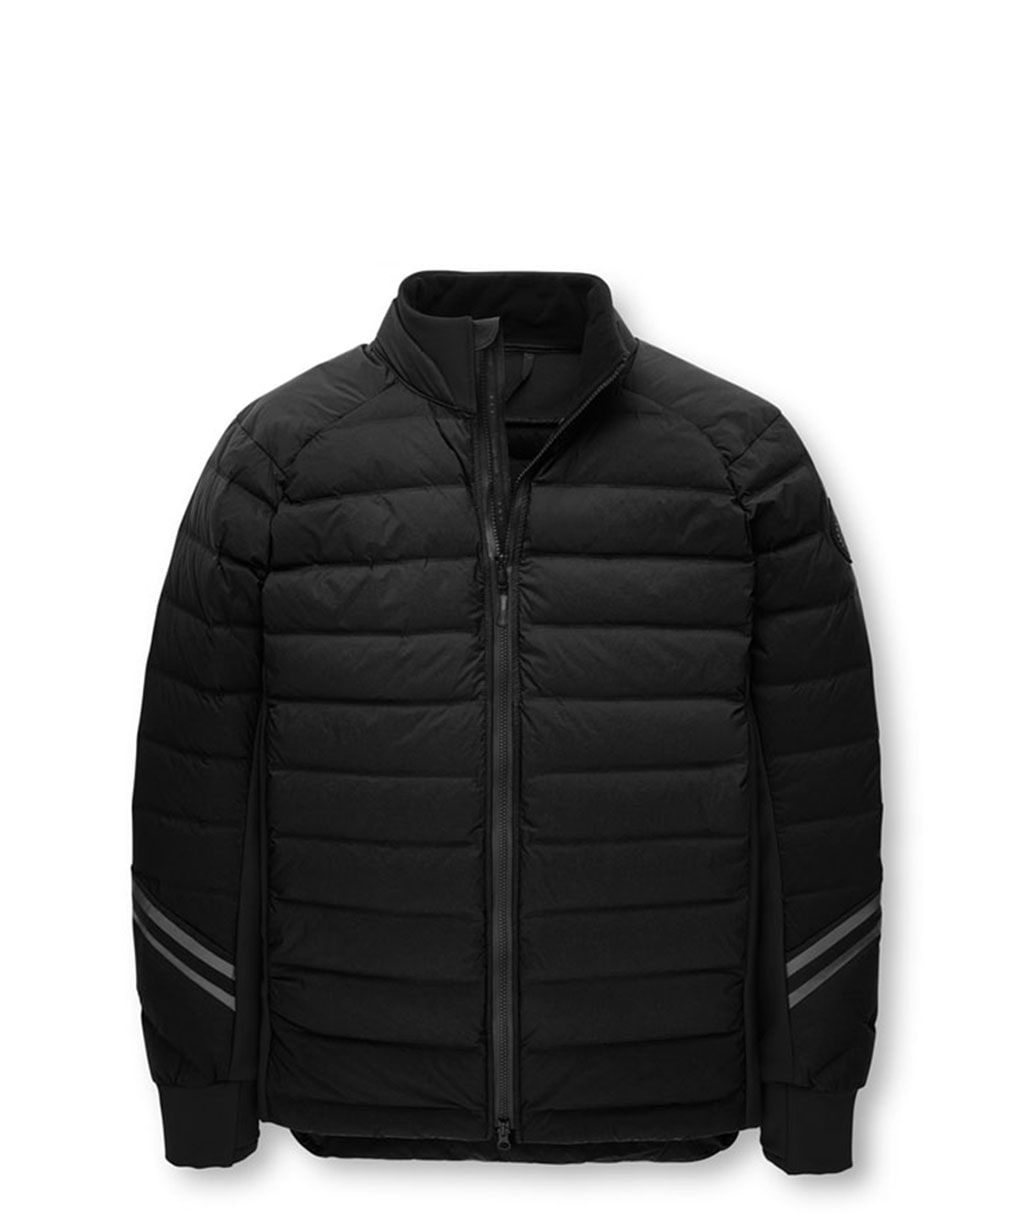 HYBRIDGE CW BOMBER BLACK LABEL